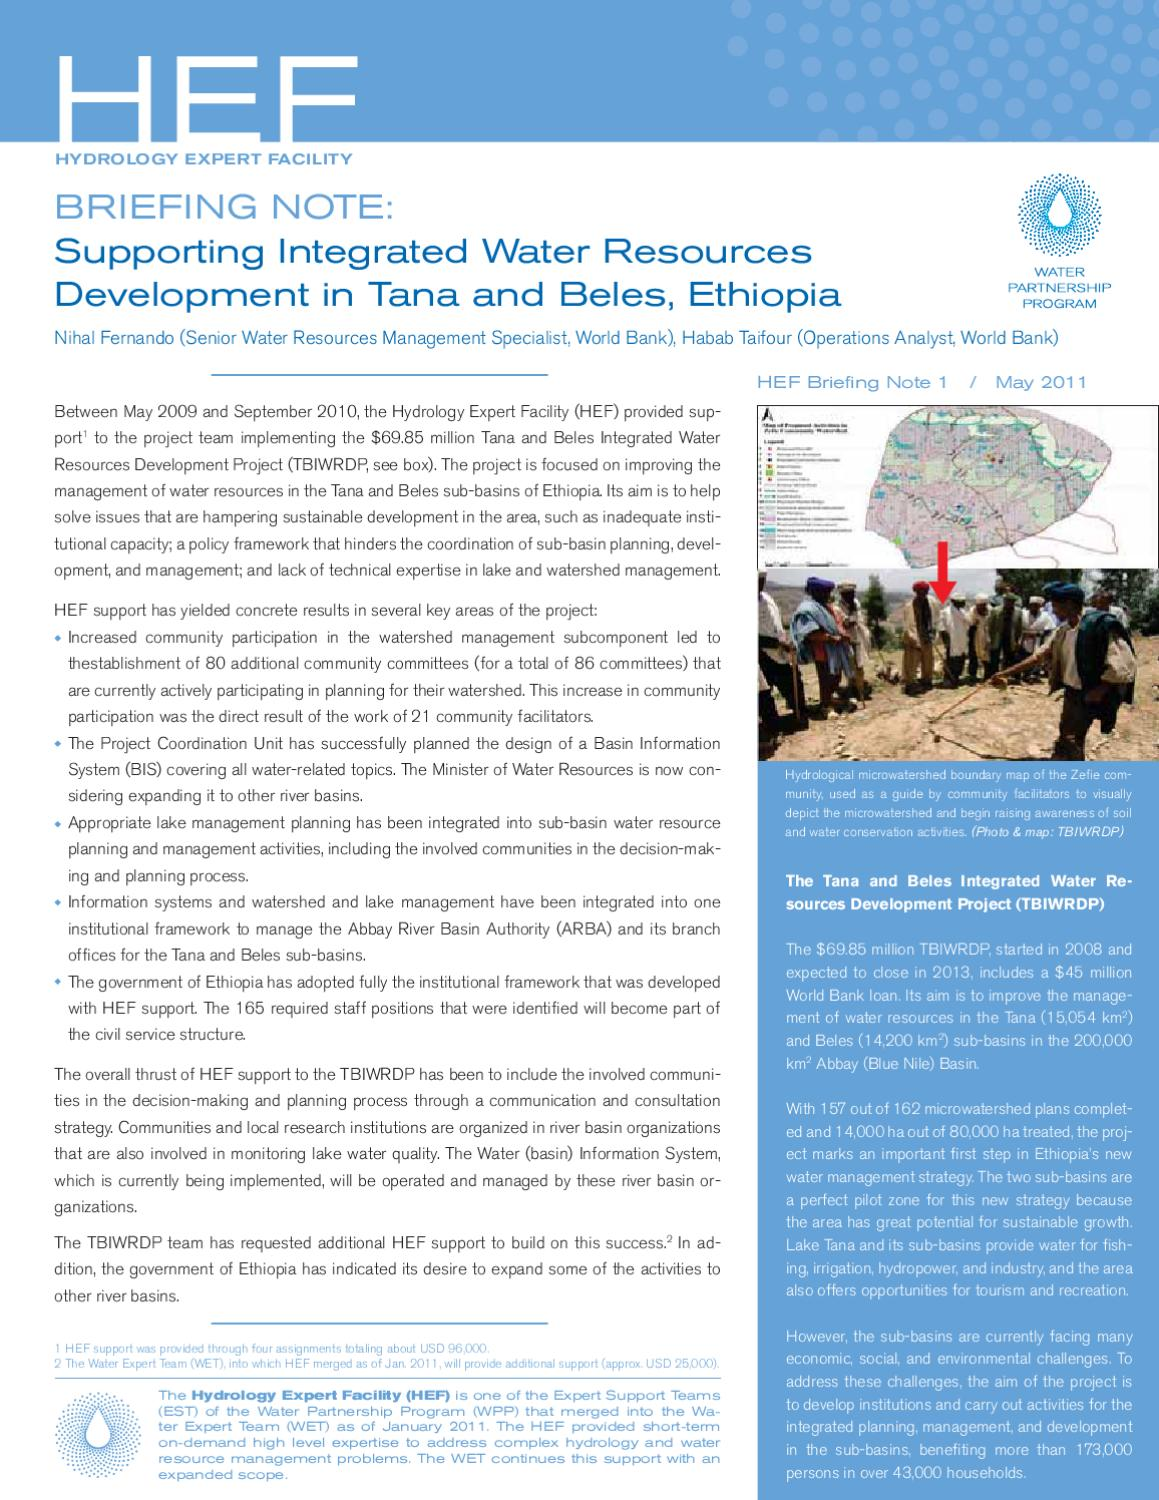 Supporting Integrated Water Resources Development in Tana